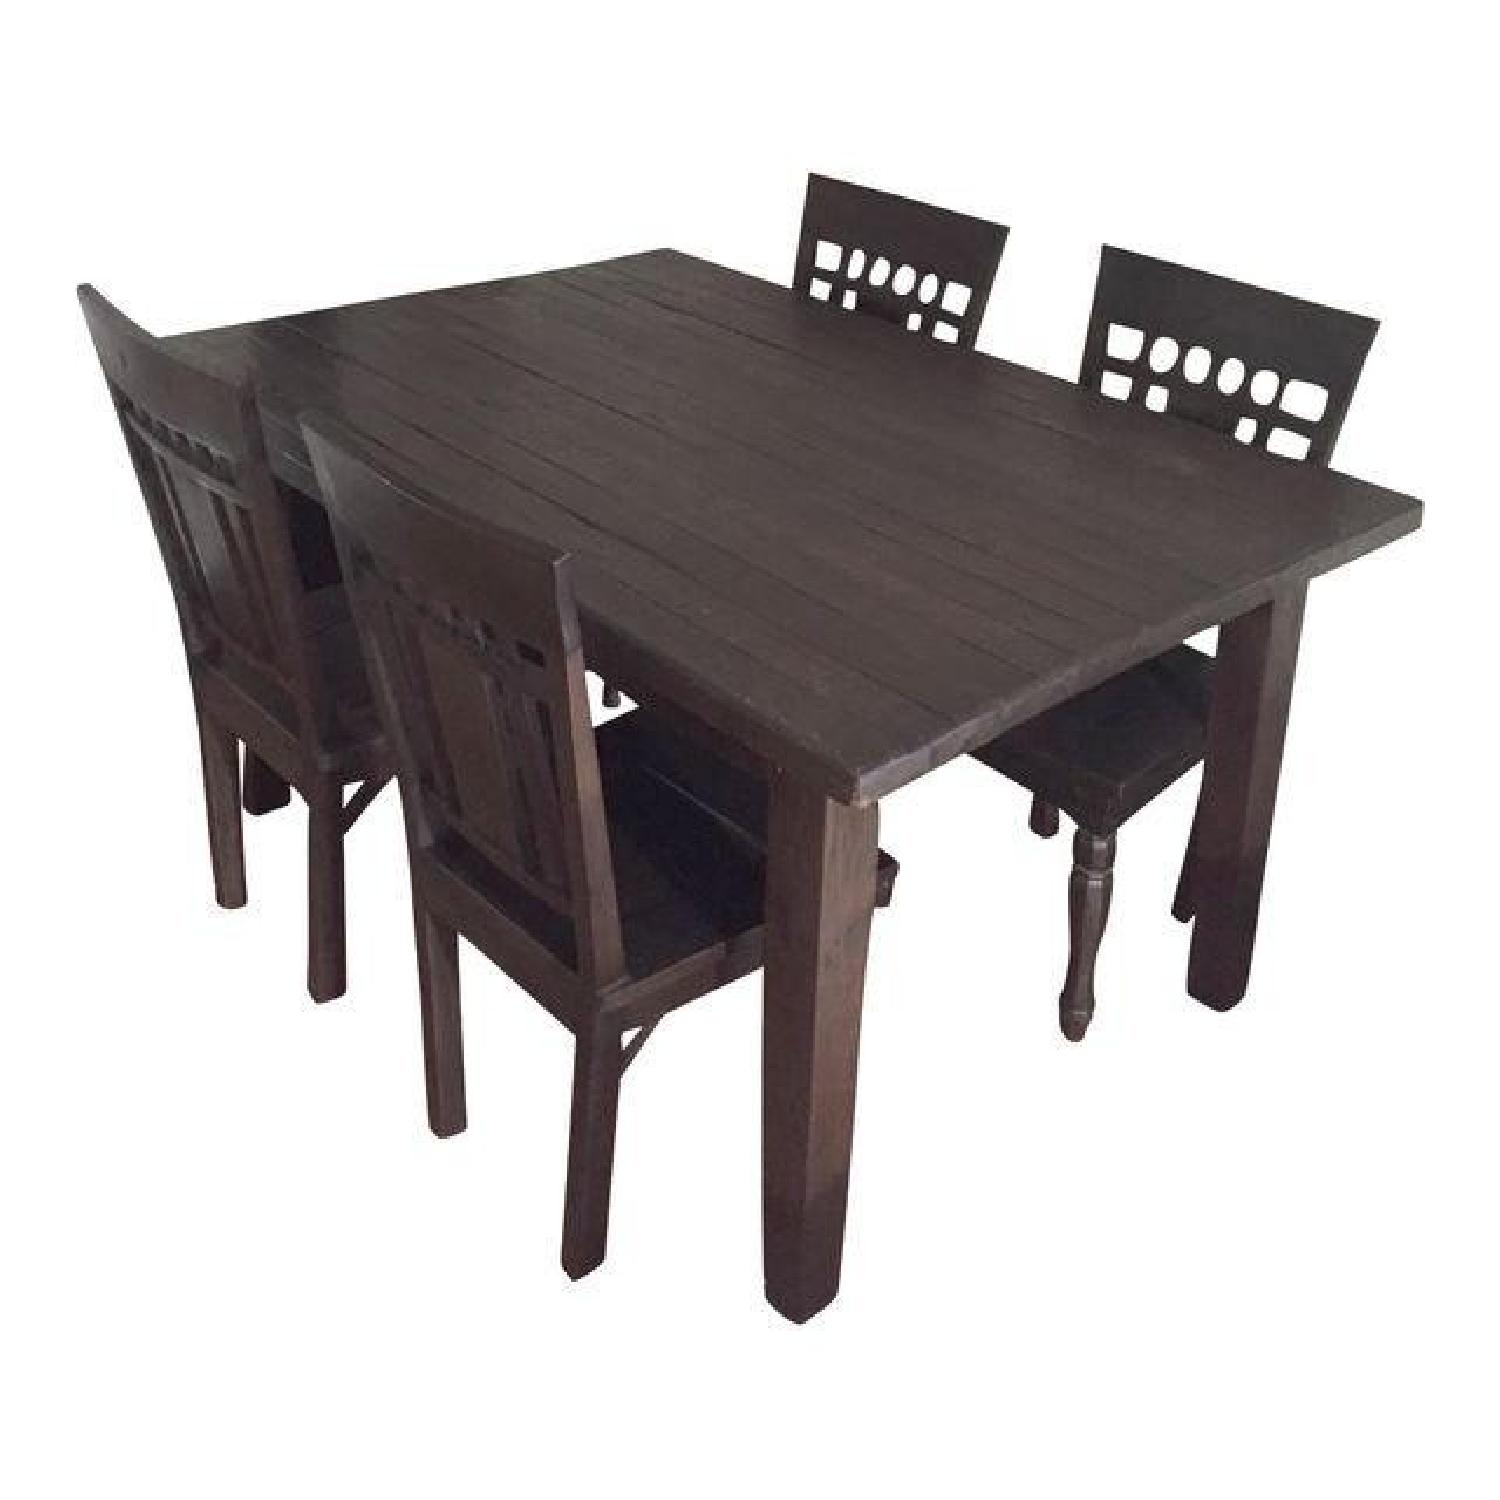 Far East Trading Co. 5 Piece Teak Dining Set - image-0